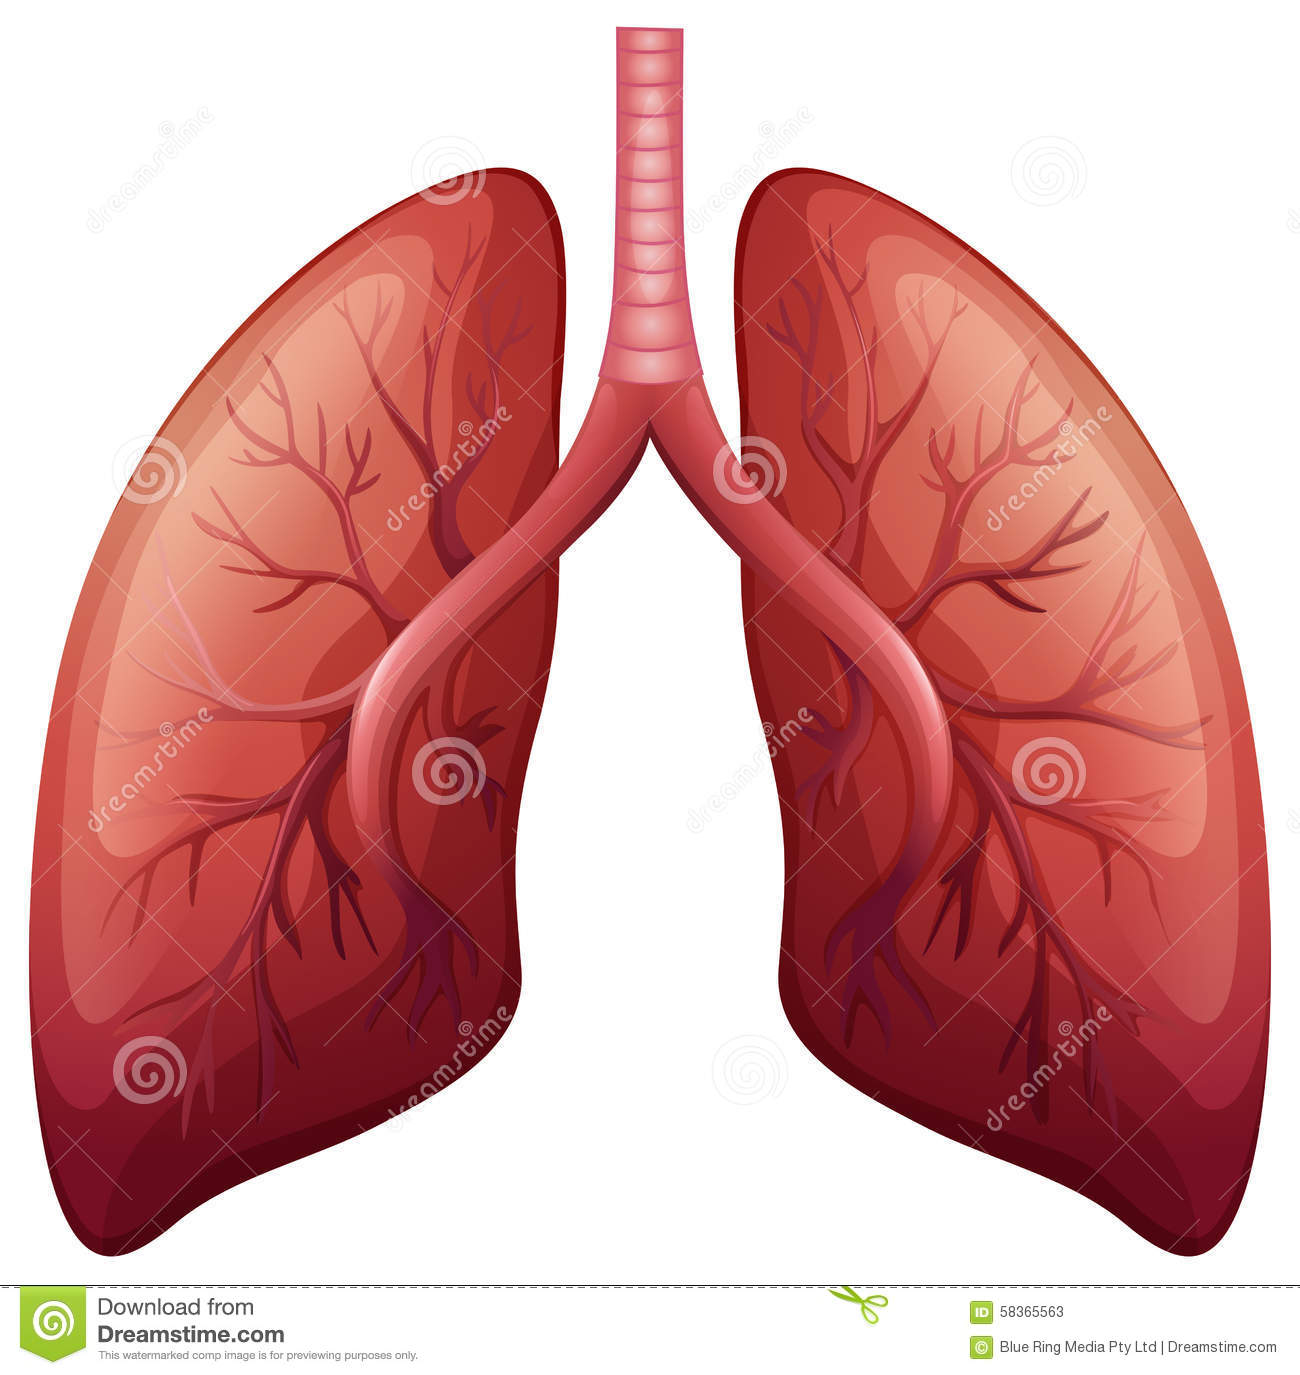 Lung Cancer Diagram In Detail Stock Vector Illustration Of Body